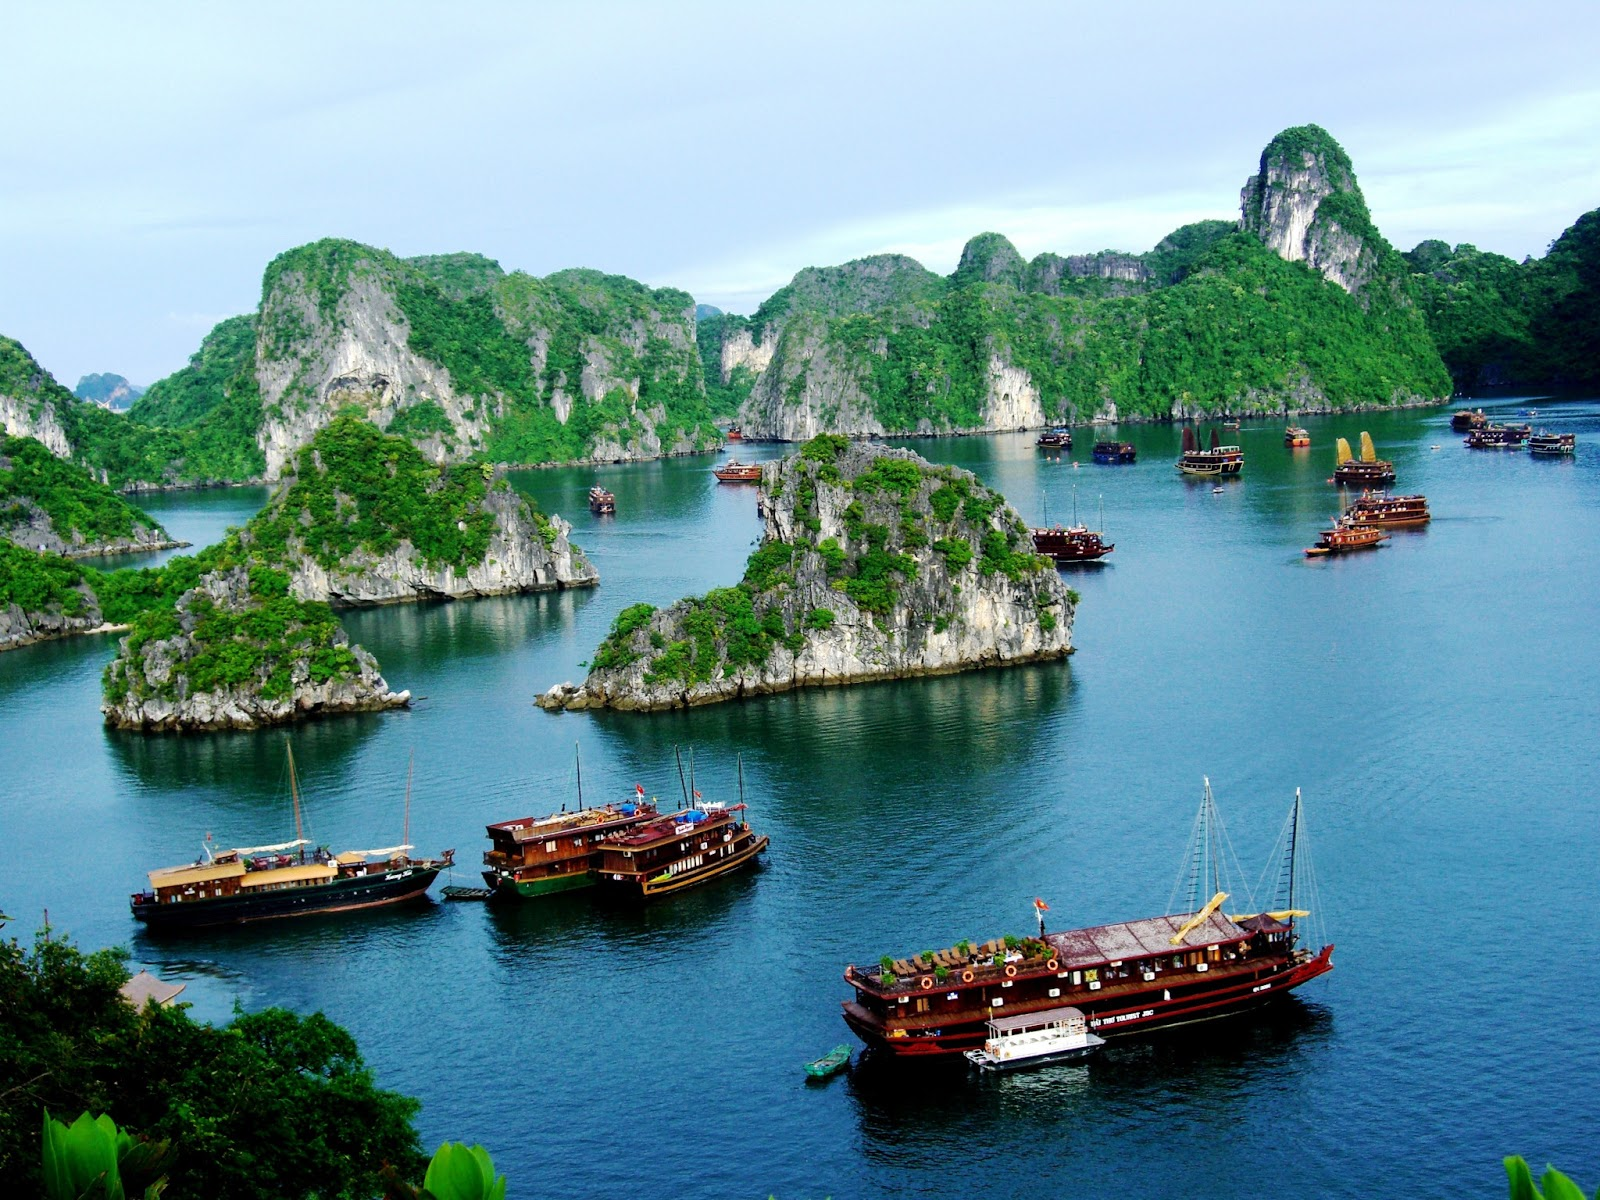 The charming beauty of Halong Bay